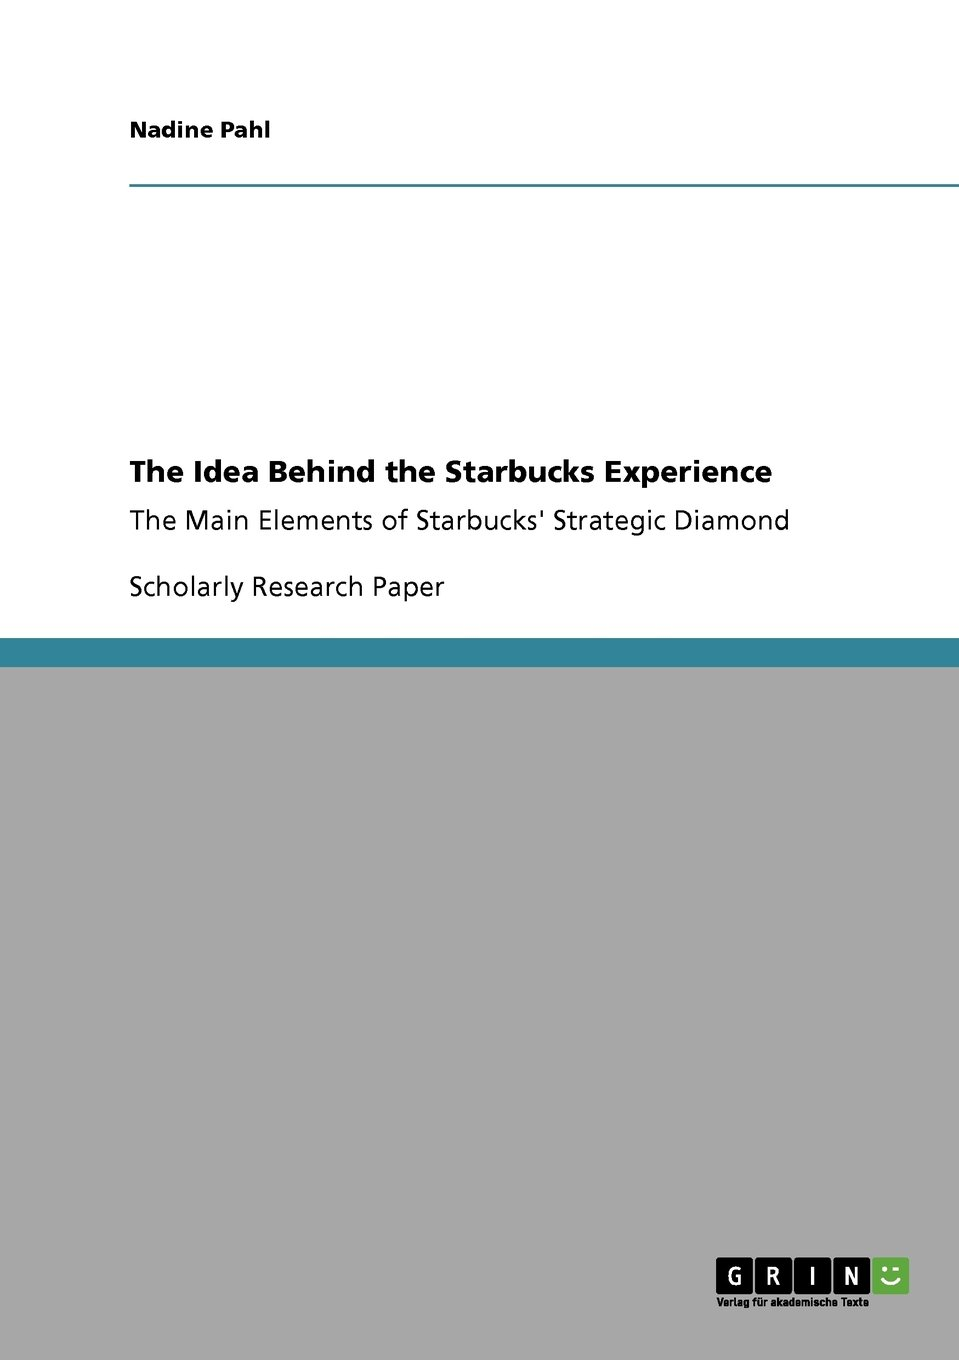 the idea behind the starbucks experience nadine pahl the idea behind the starbucks experience nadine pahl 9783640302994 com books